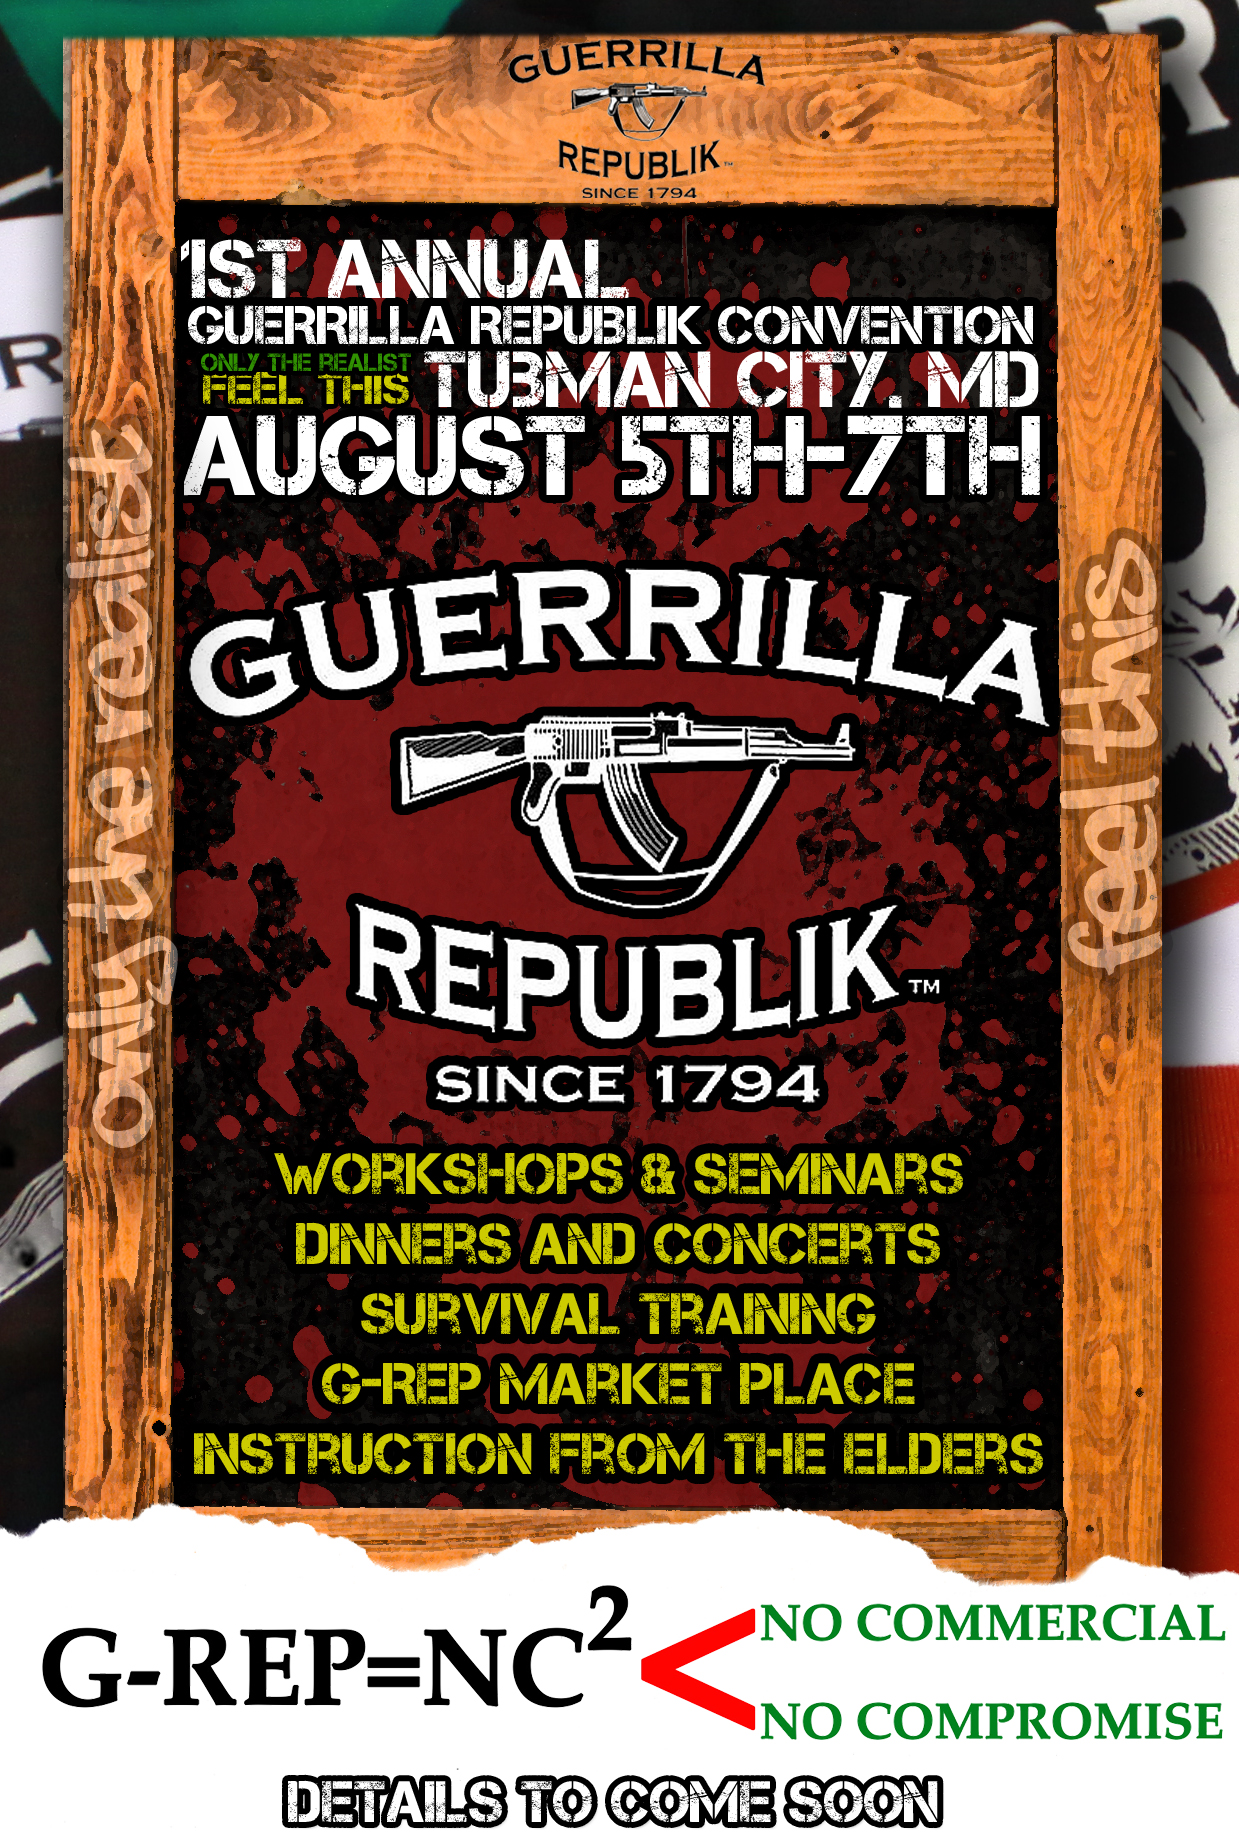 Jehuniko's Information Revolution Volume 63: The 1st annual Guerrilla Republik Convention 